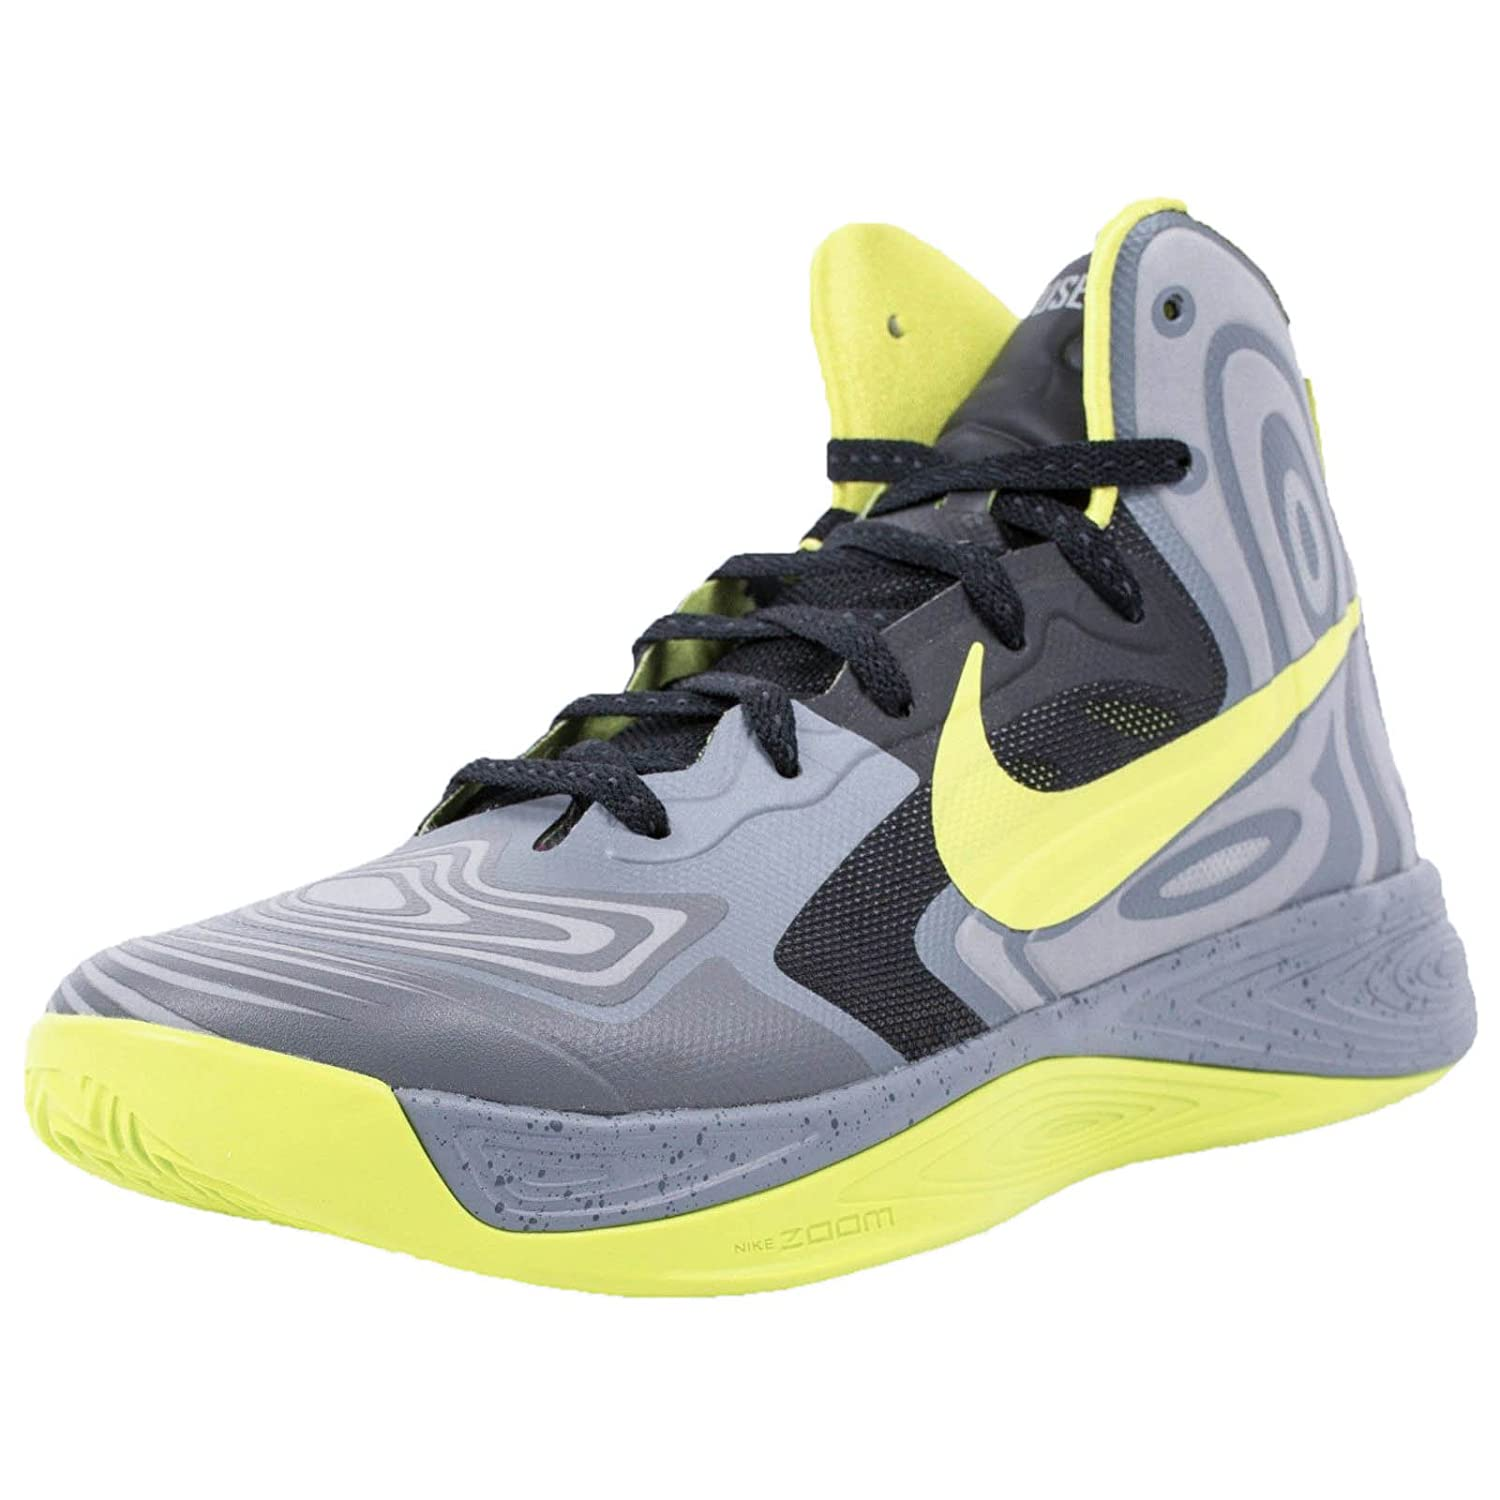 new products b9114 3721e Amazon.com   Nike HYPERFUSE SUPREME BASKETBALL SHOES COOL GREY ATOMIC GREEN  BLACK 536861 001   Basketball